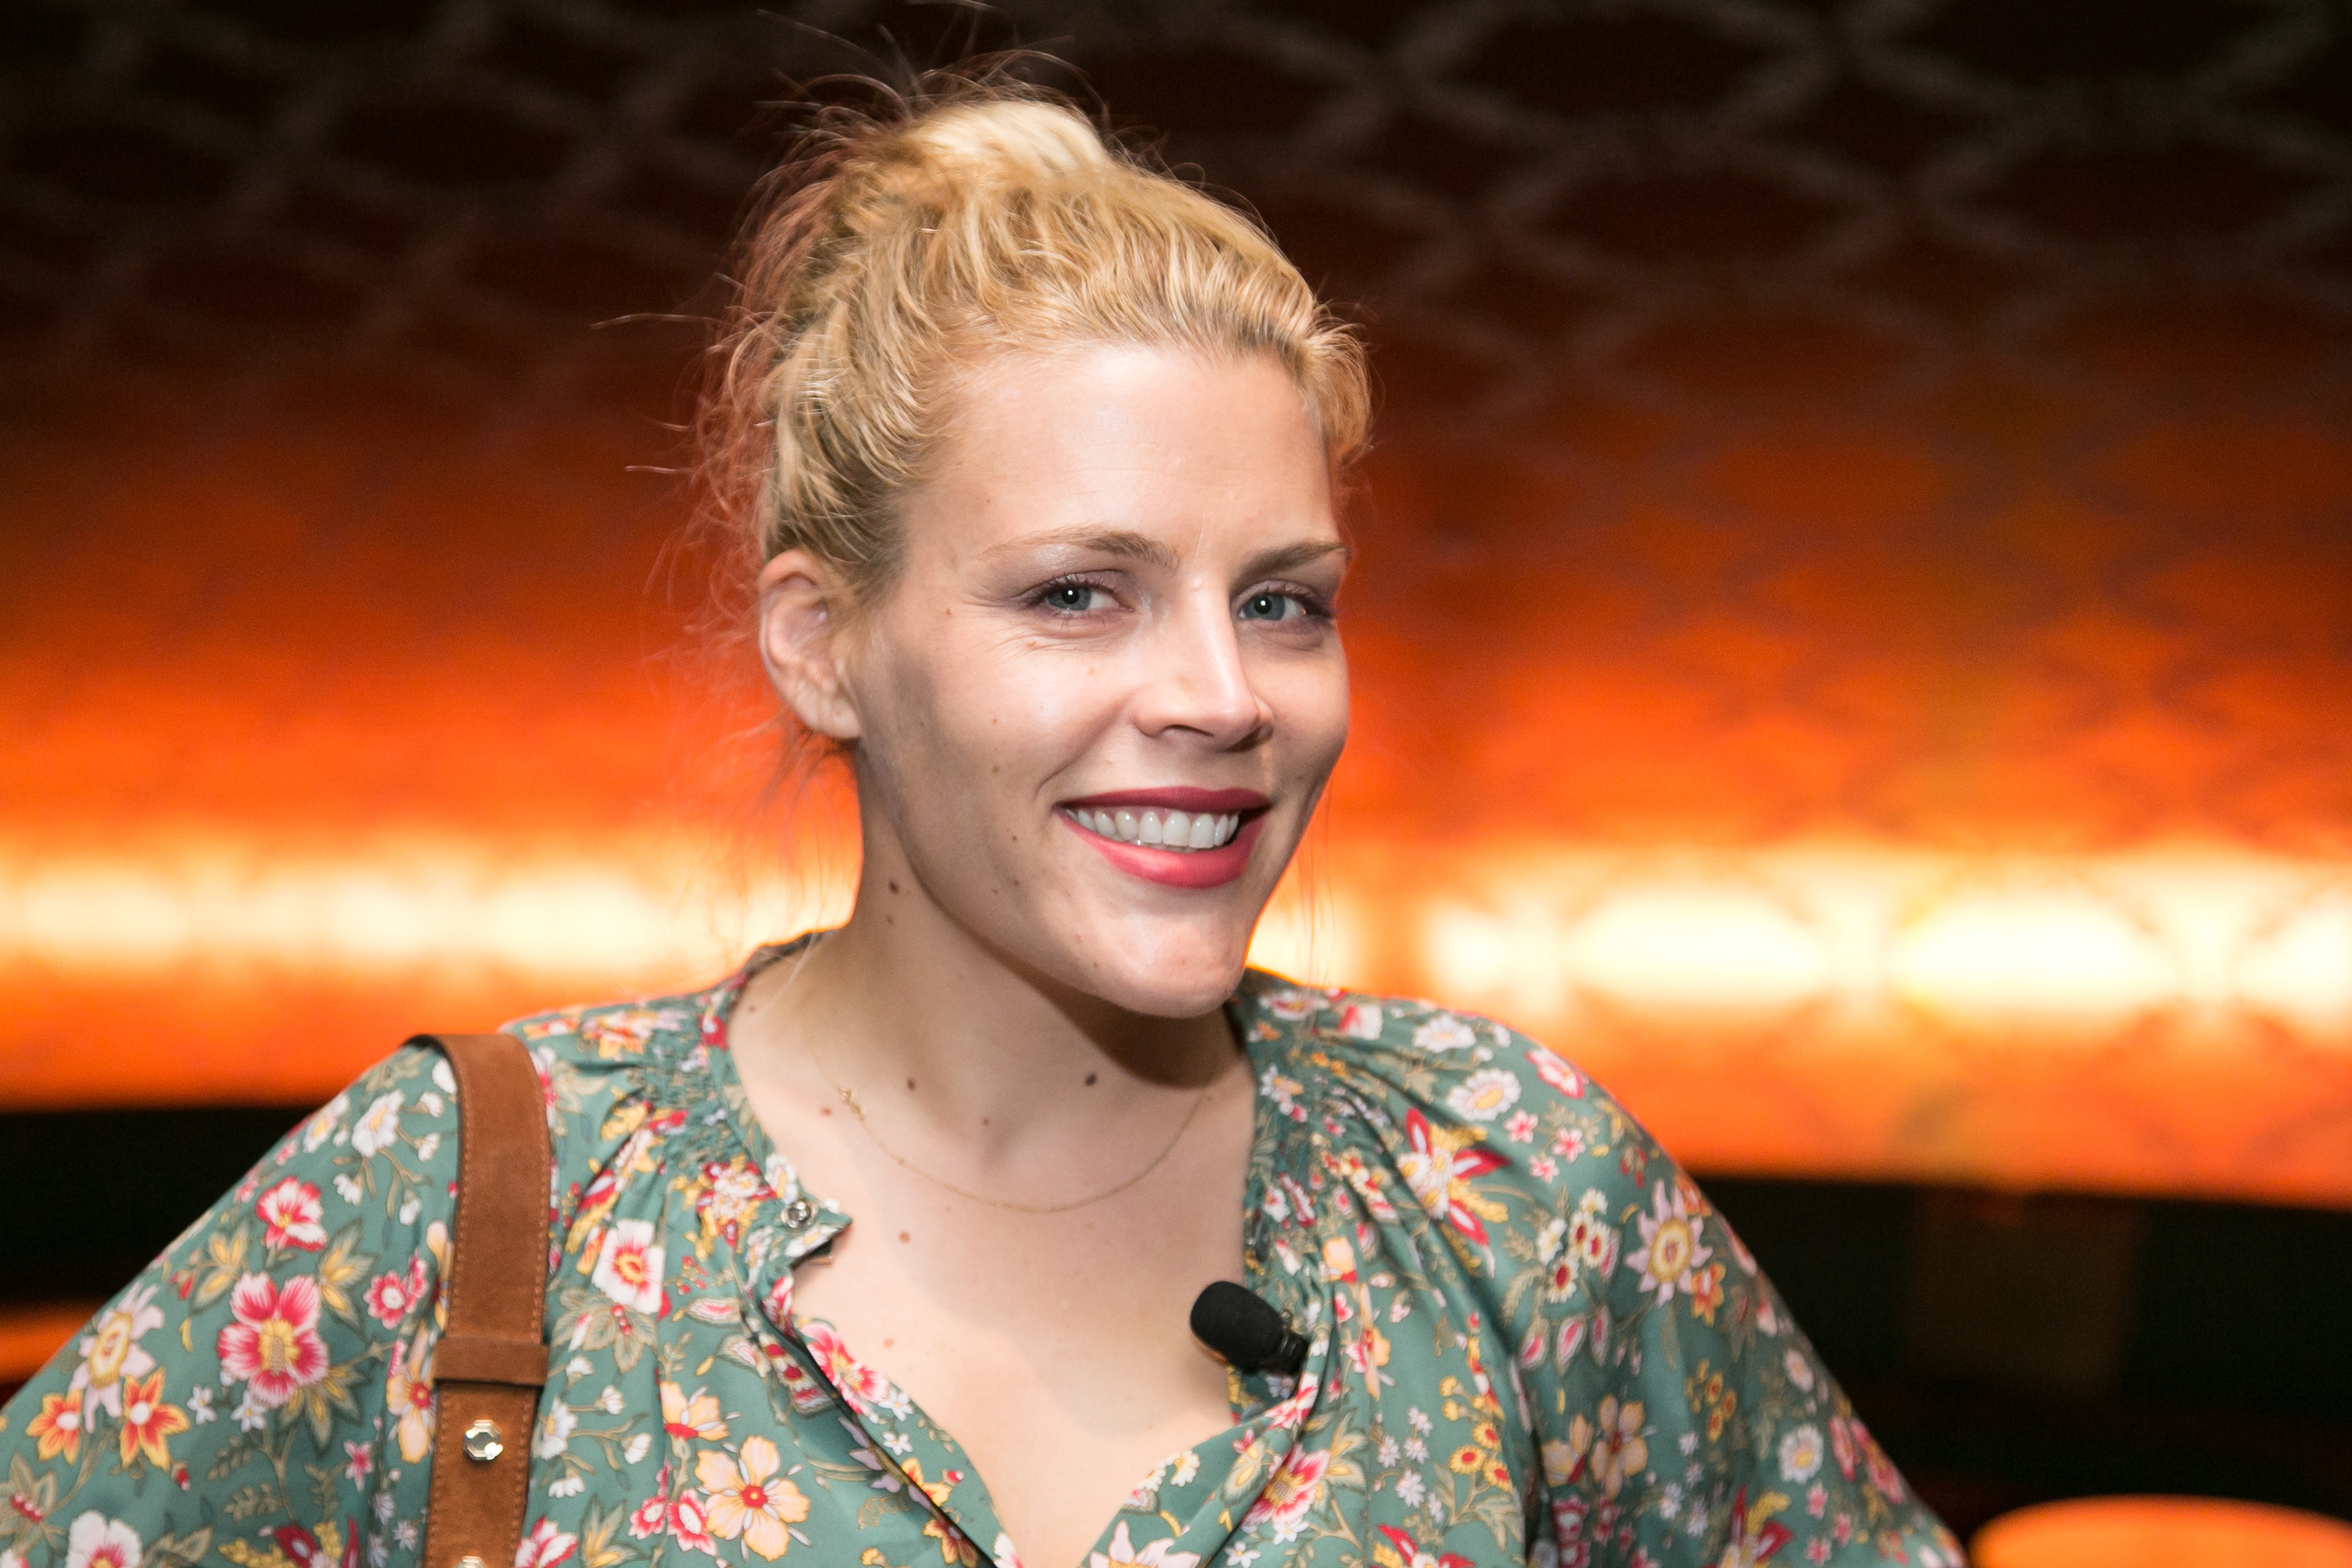 LOS ANGELES, CA - OCTOBER 20:  Busy Philipps attends the Young Storytellers' 13th Annual Signature Event at The Novo by Microsoft on October 20, 2016 in Los Angeles, California.  (Photo by Gabriel Olsen/FilmMagic)